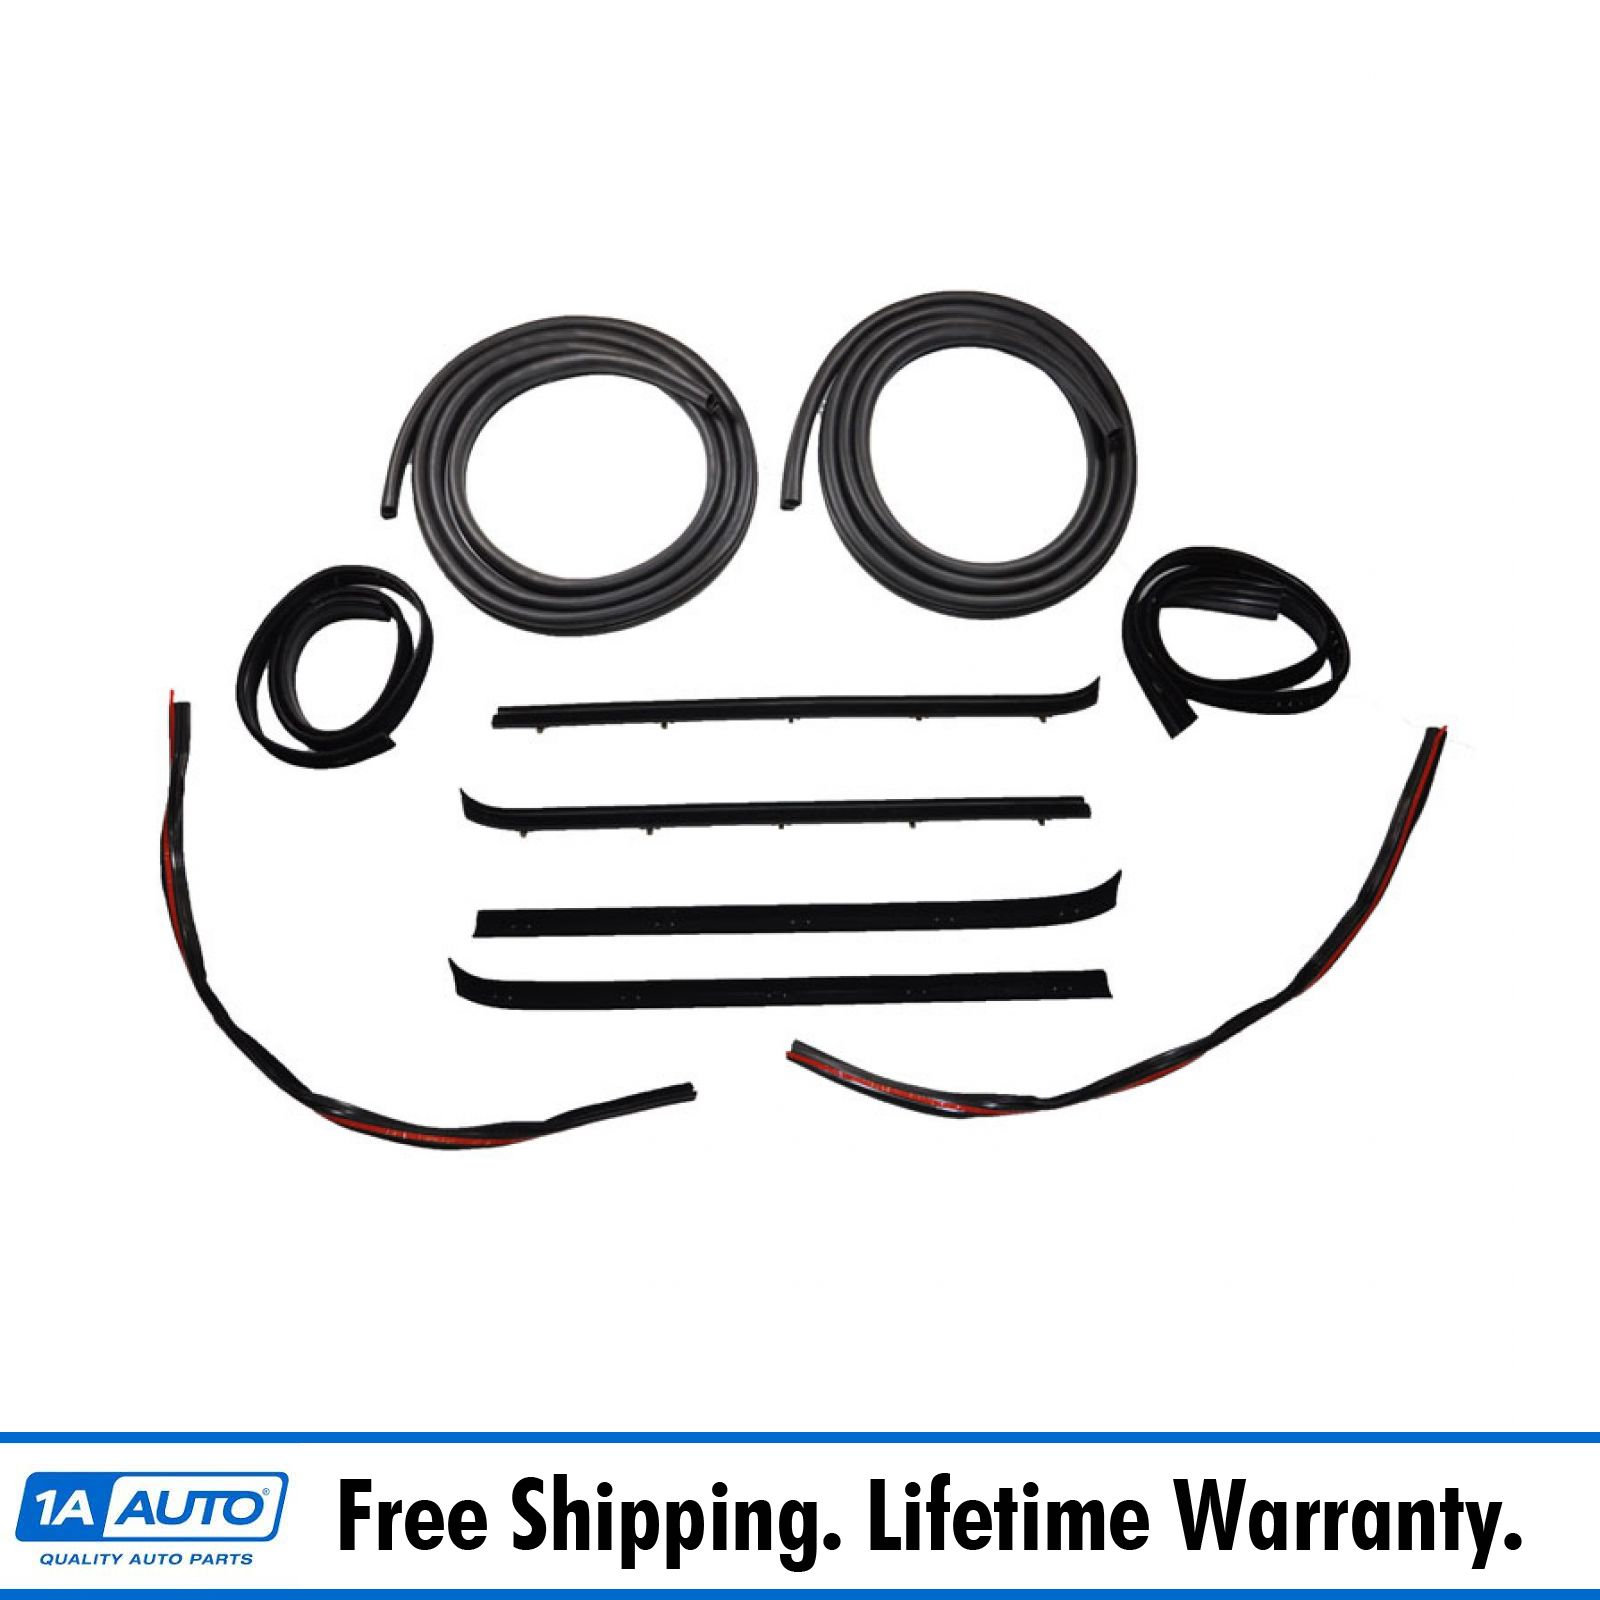 1A Auto Door /& Window Run Channel Sweep Felt Front Seal Kit for 80-86 Ford Pickup Truck